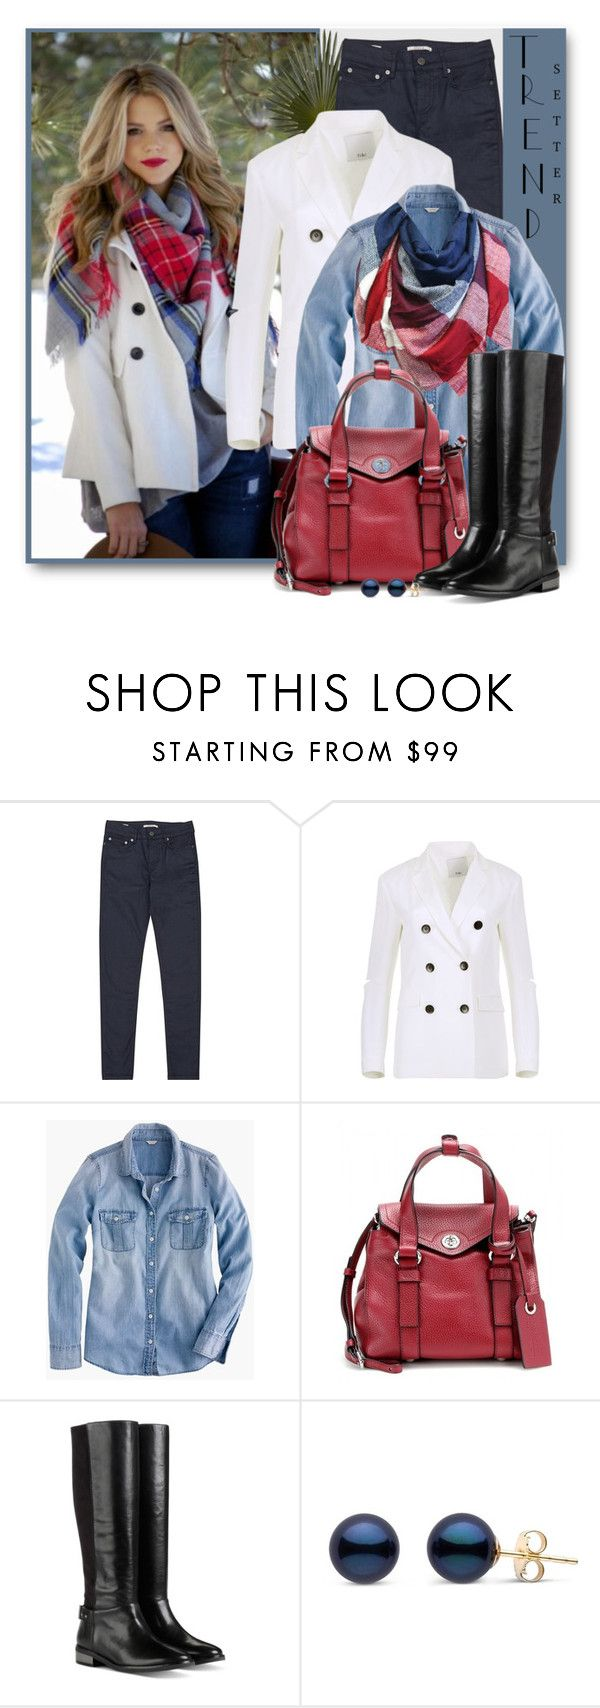 """Trend Setter"" by brendariley-1 ❤ liked on Polyvore featuring J.Crew, Reiss, TIBI, Marc by Marc Jacobs and Cole Haan"